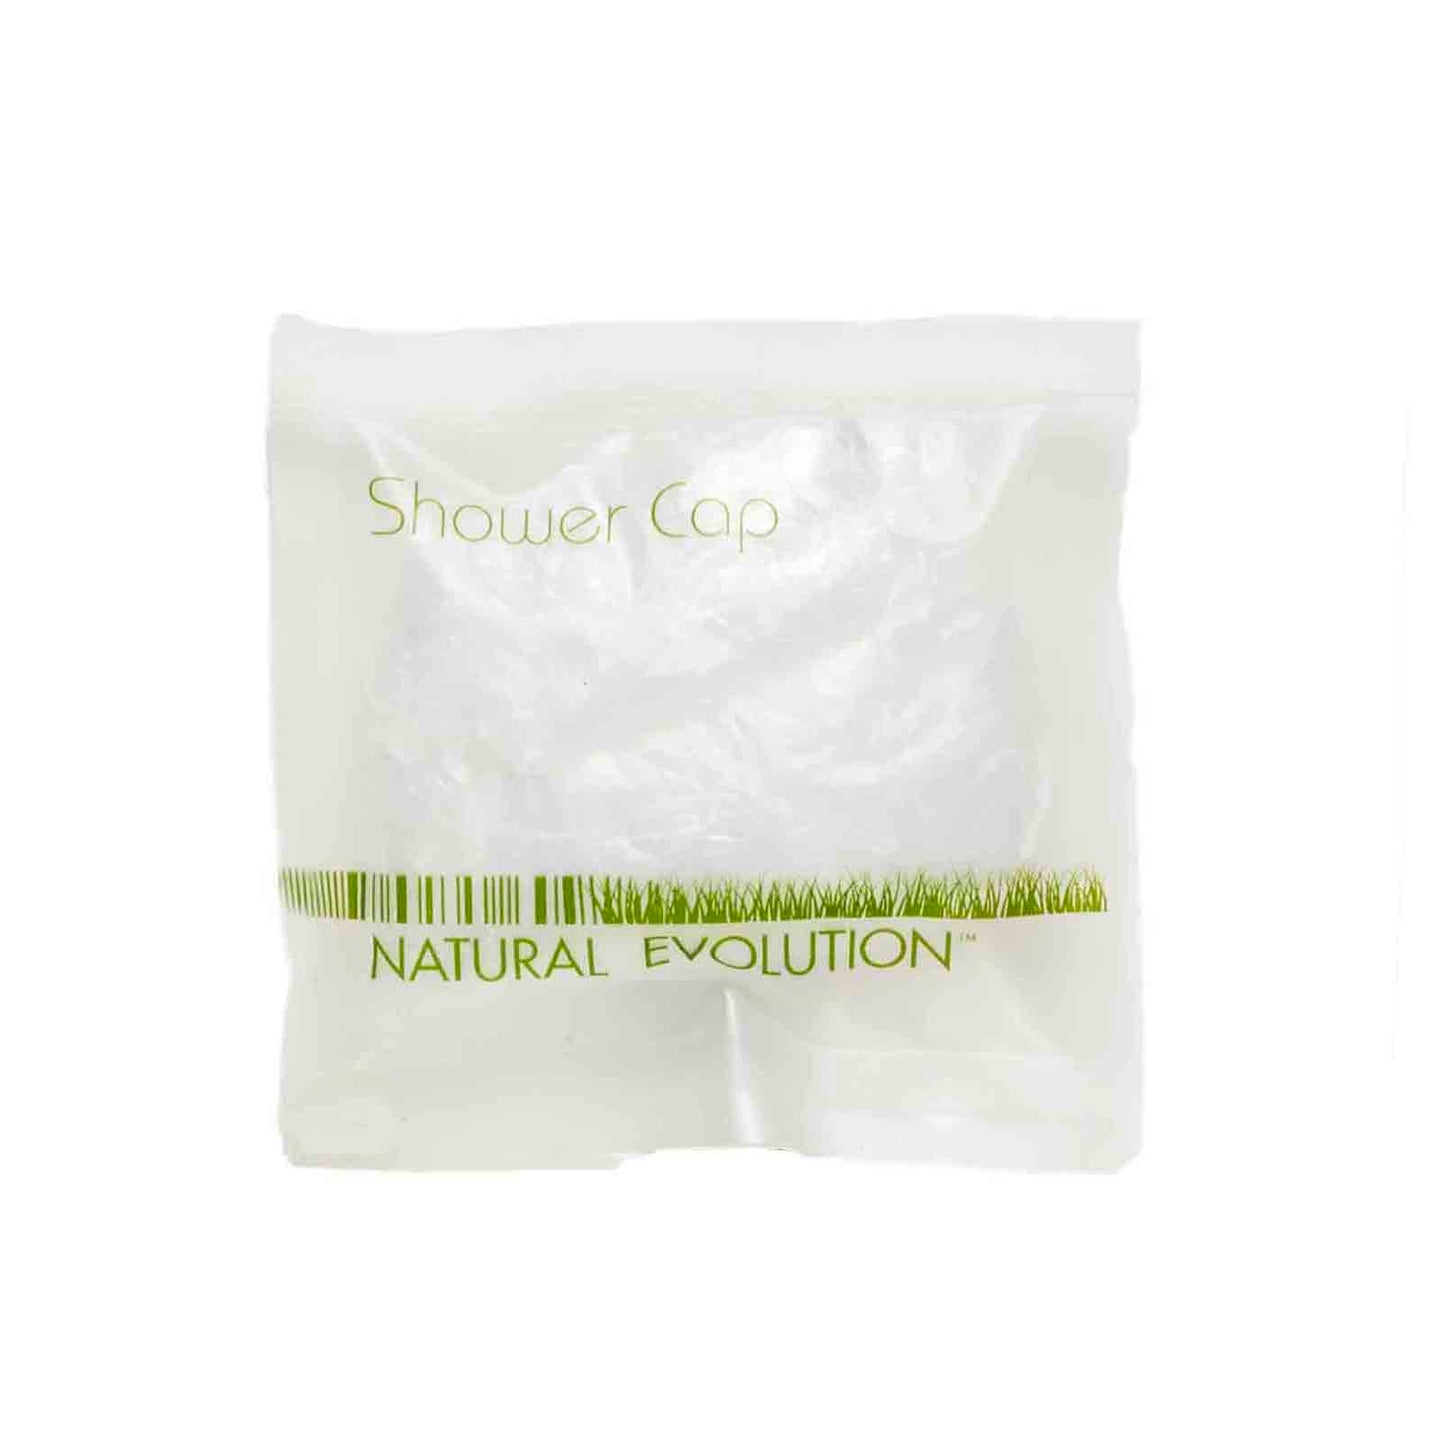 Shower Cap in Sachet